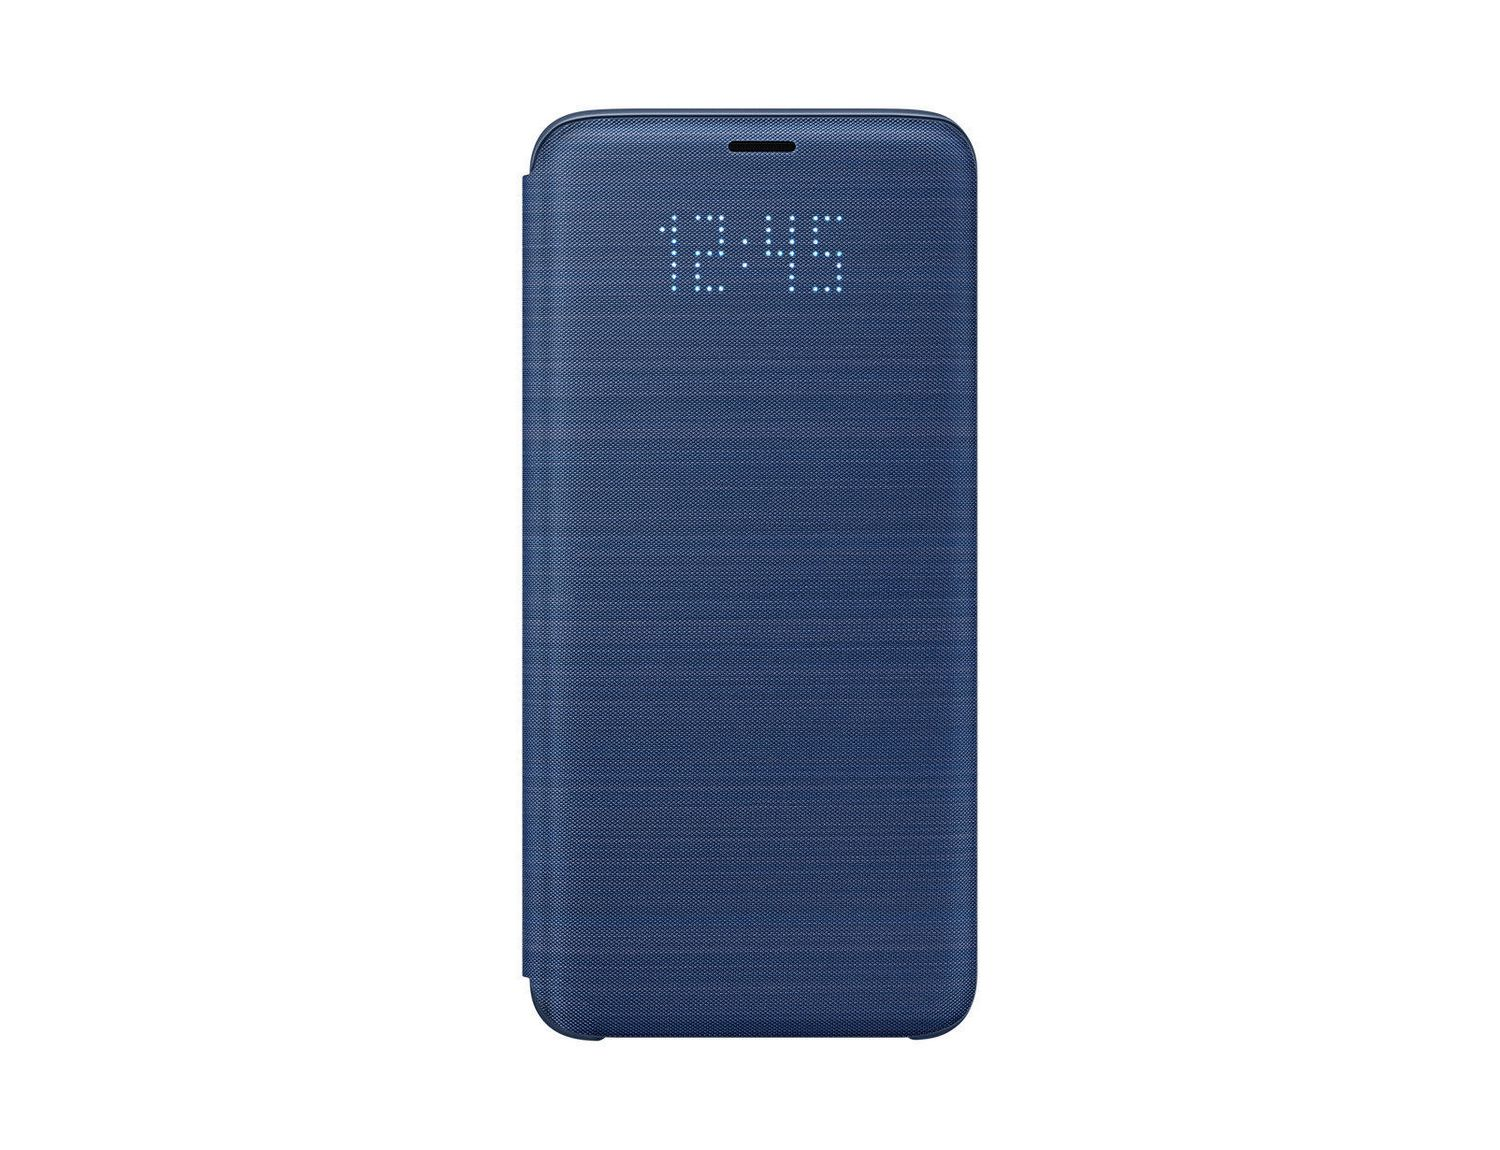 huge discount 47c59 7032b Samsung Galaxy S9 Plus LED View Cover Blue